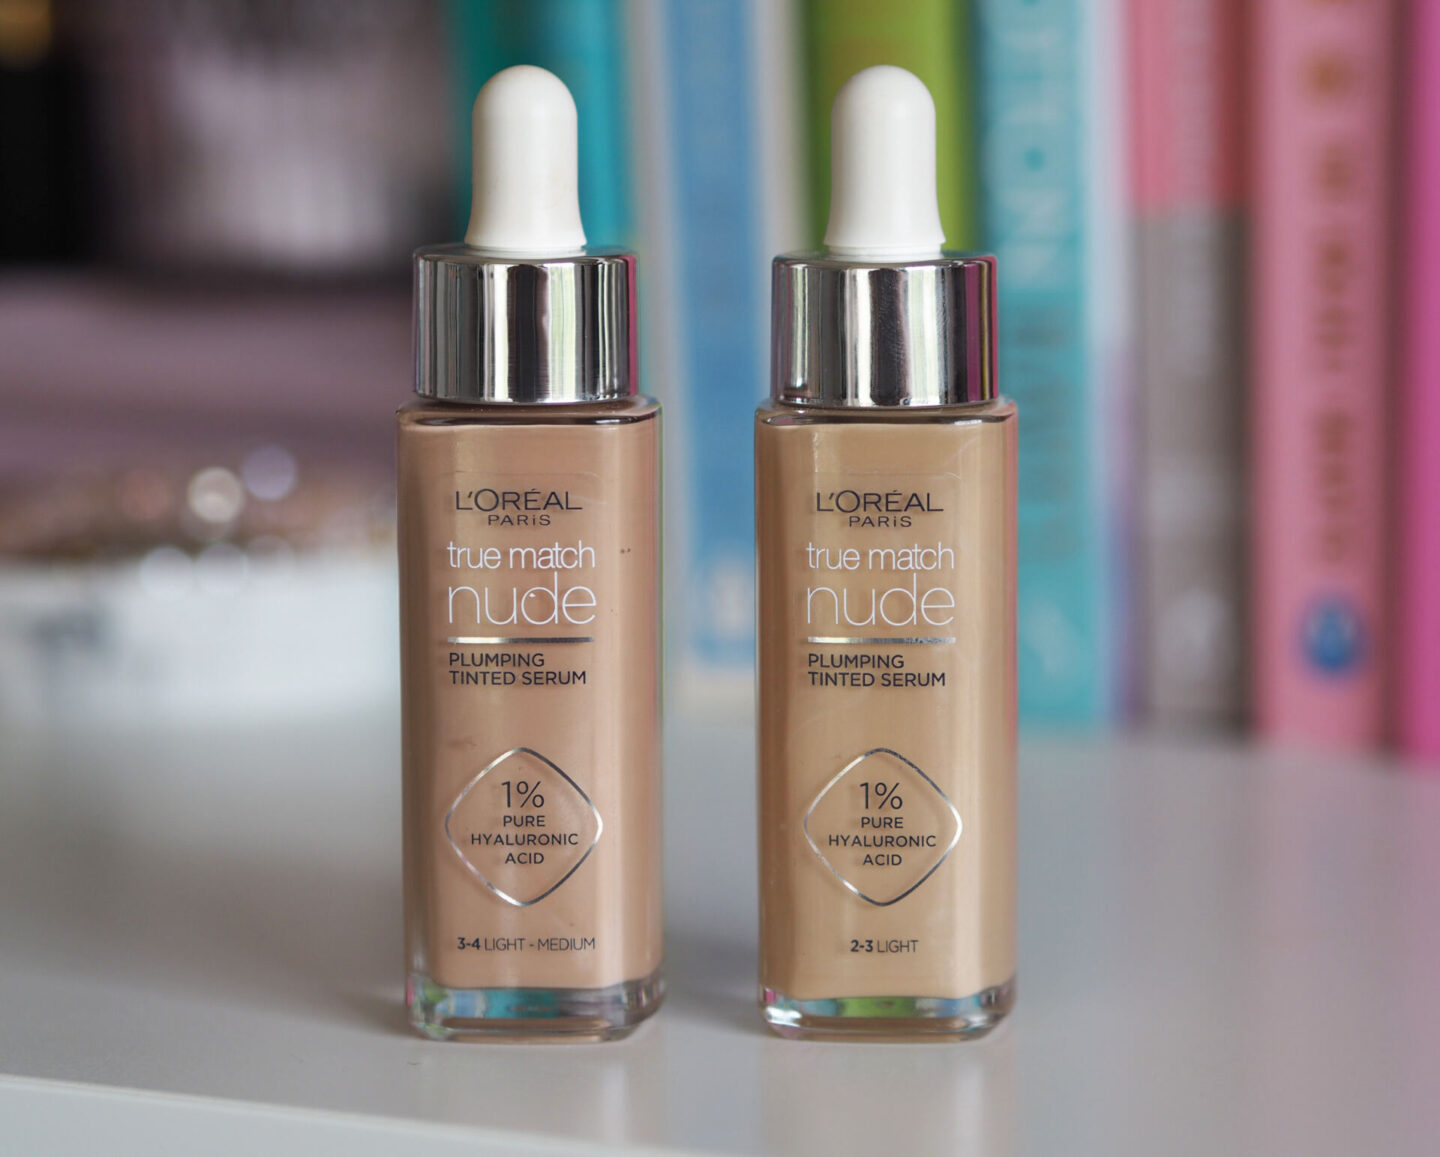 L'Oreal True Match Plumping Tinted Serum review